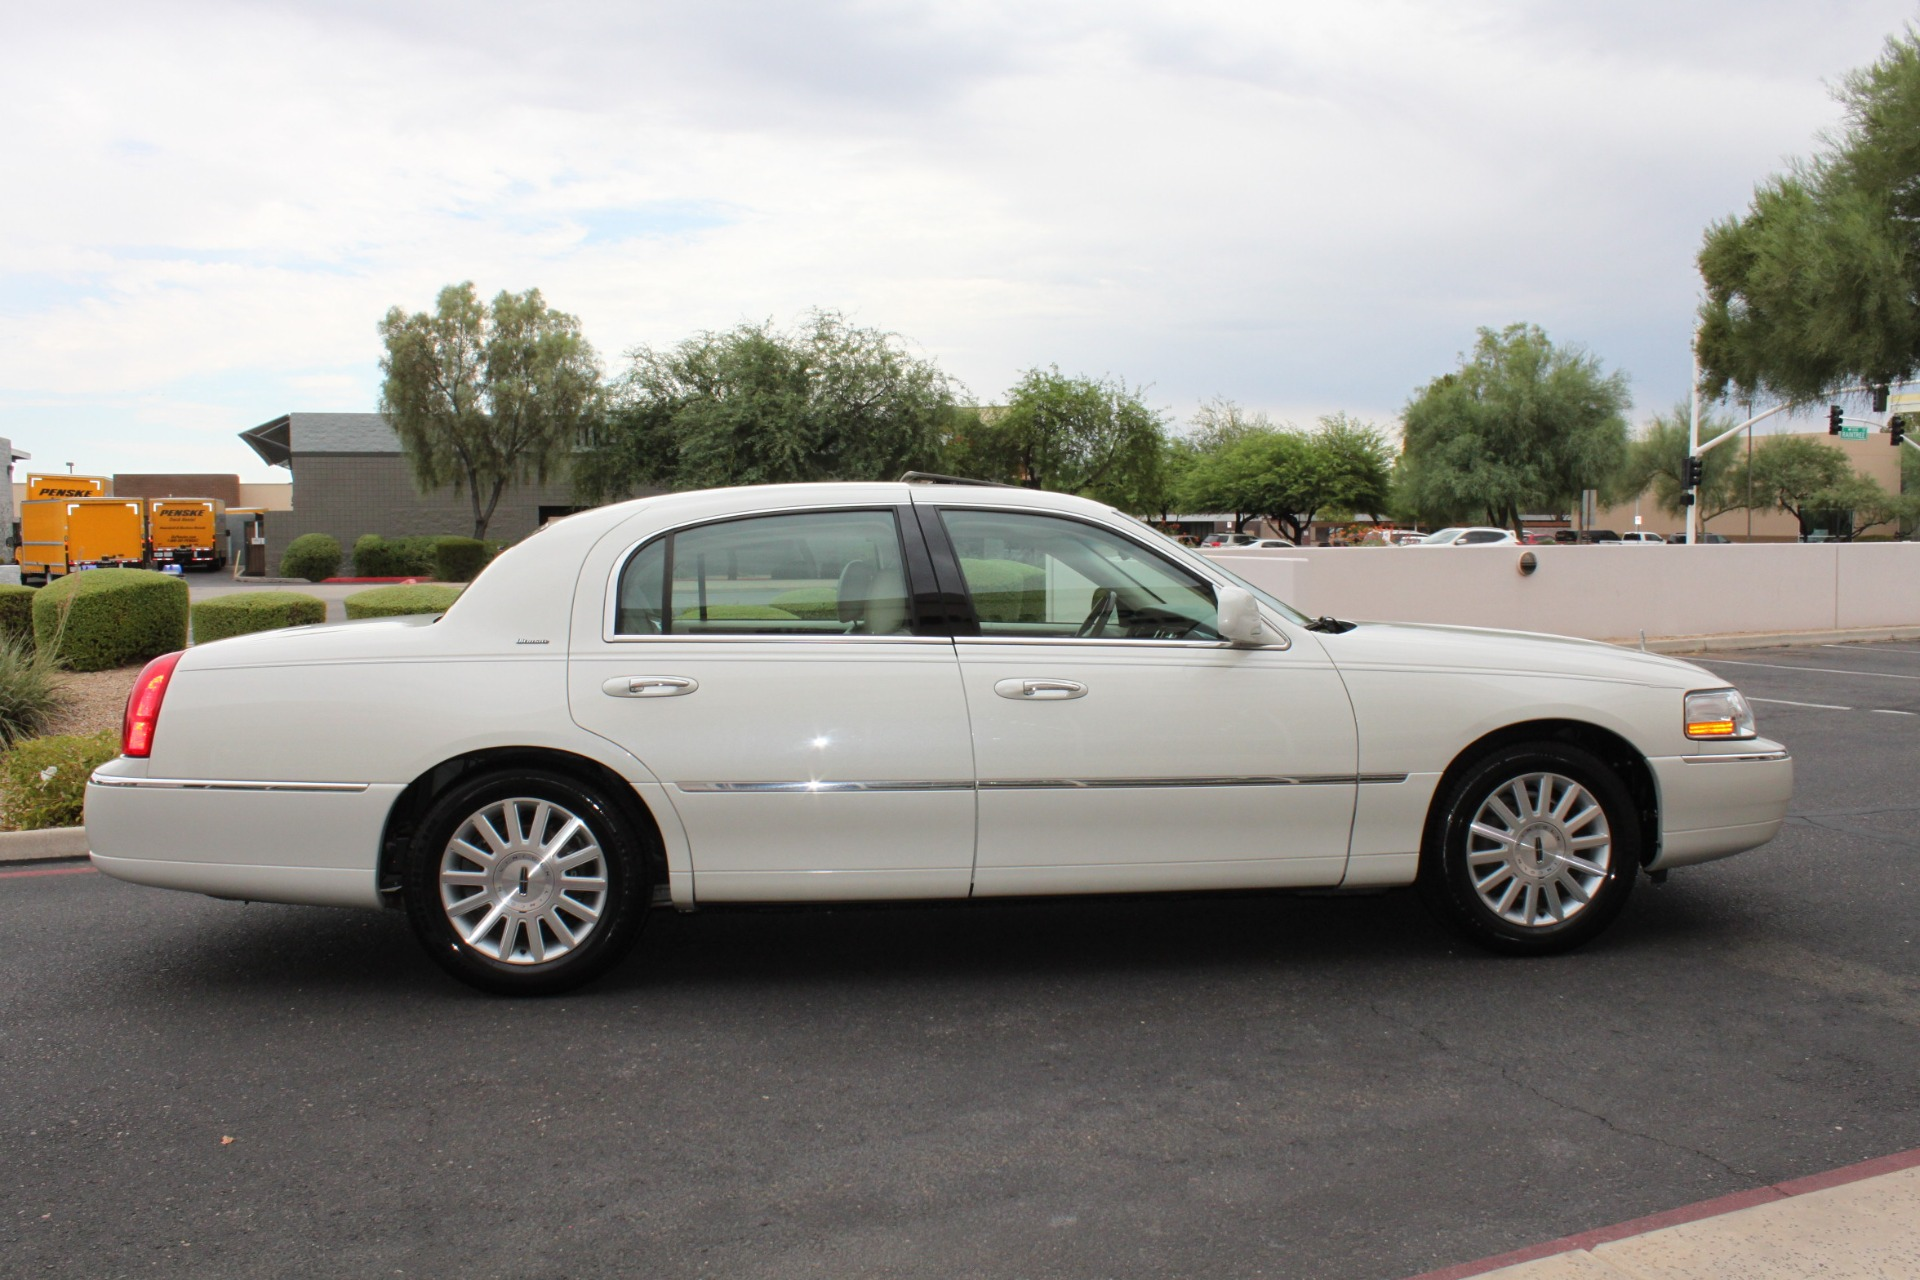 Used-2004-Lincoln-Town-Car-Ultimate-Wrangler